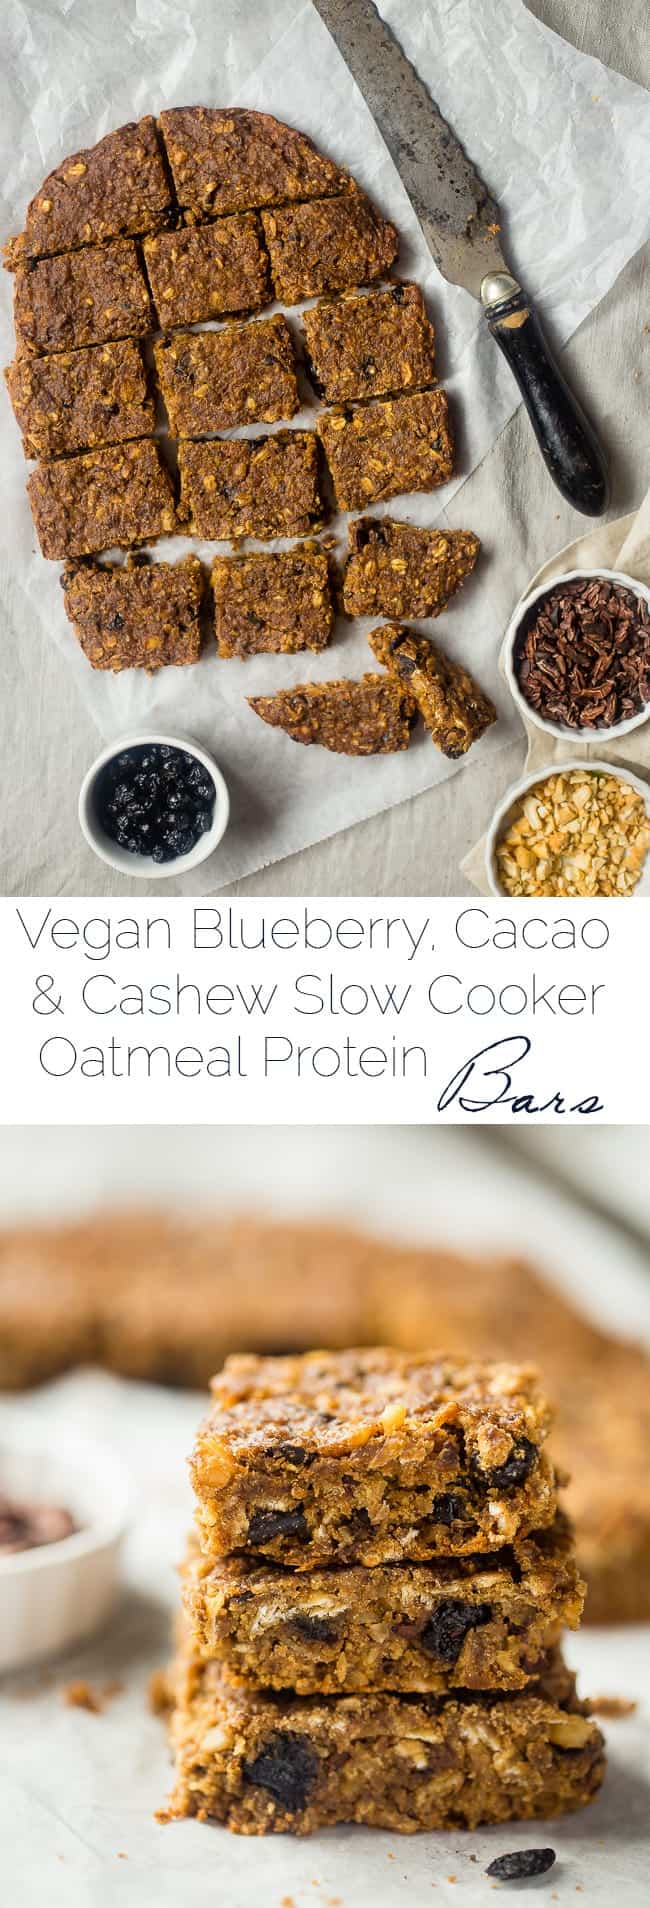 Vegan Slow Cooker Superfood Protein Bars - These easy homemade protein bars are made in your slow cooker, packed with superfoods and are gluten free and vegan friendly! Perfect for busy mornings or a healthy snack!   Foodfaithfitness.com   @FoodFaithFit